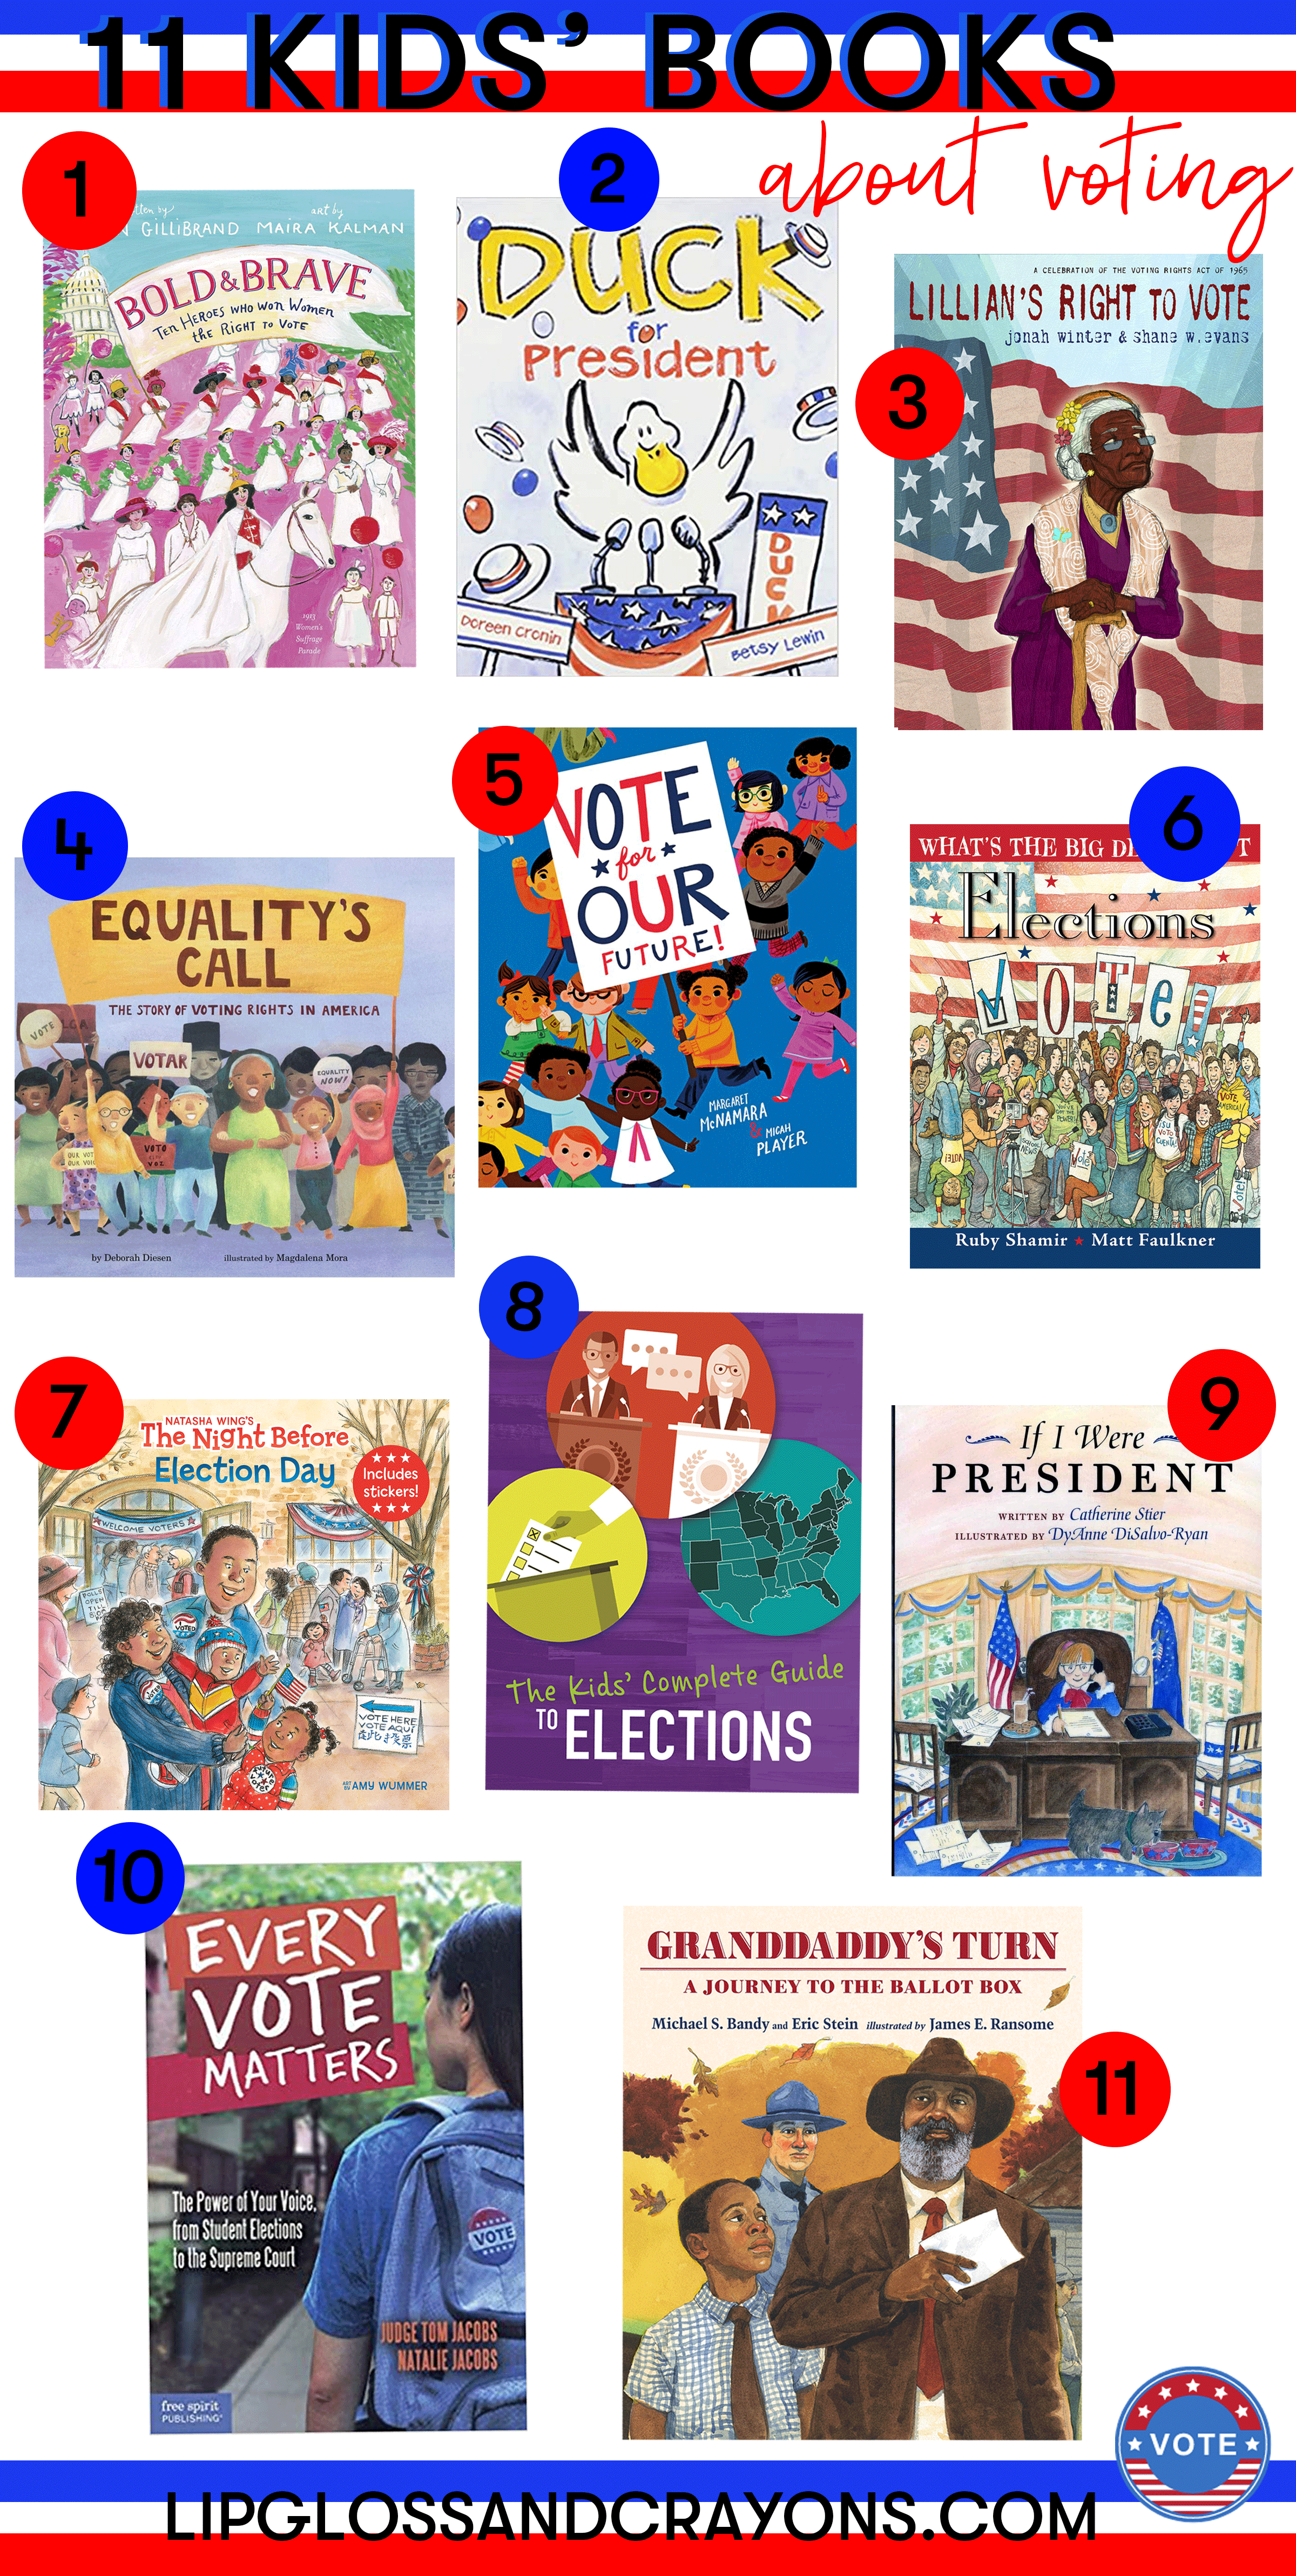 Looking for kids books about voting? These 11 books are perfect ways to talk to your children about voting and elections!